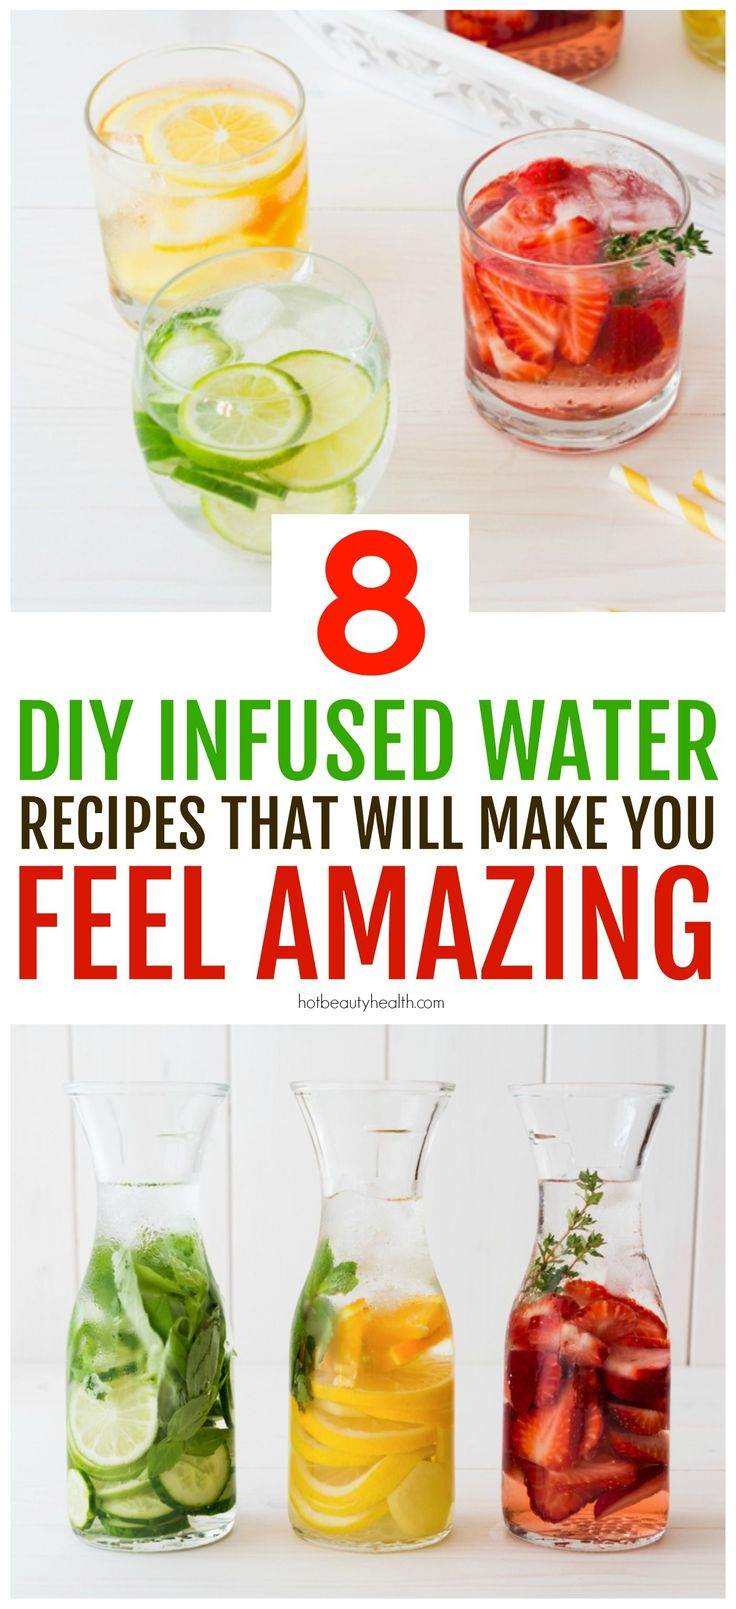 DIY Fruit Infused Water aka detox water is perfect for aiding in weight loss, a body cleanse, and glowing skin. It will also leave you feeling amazing! Click pin to see 8 different infused water recipes to make at home instead of reaching for a can of soda. Hot Beauty Health #detoxwater #infusedwater #fruitwater